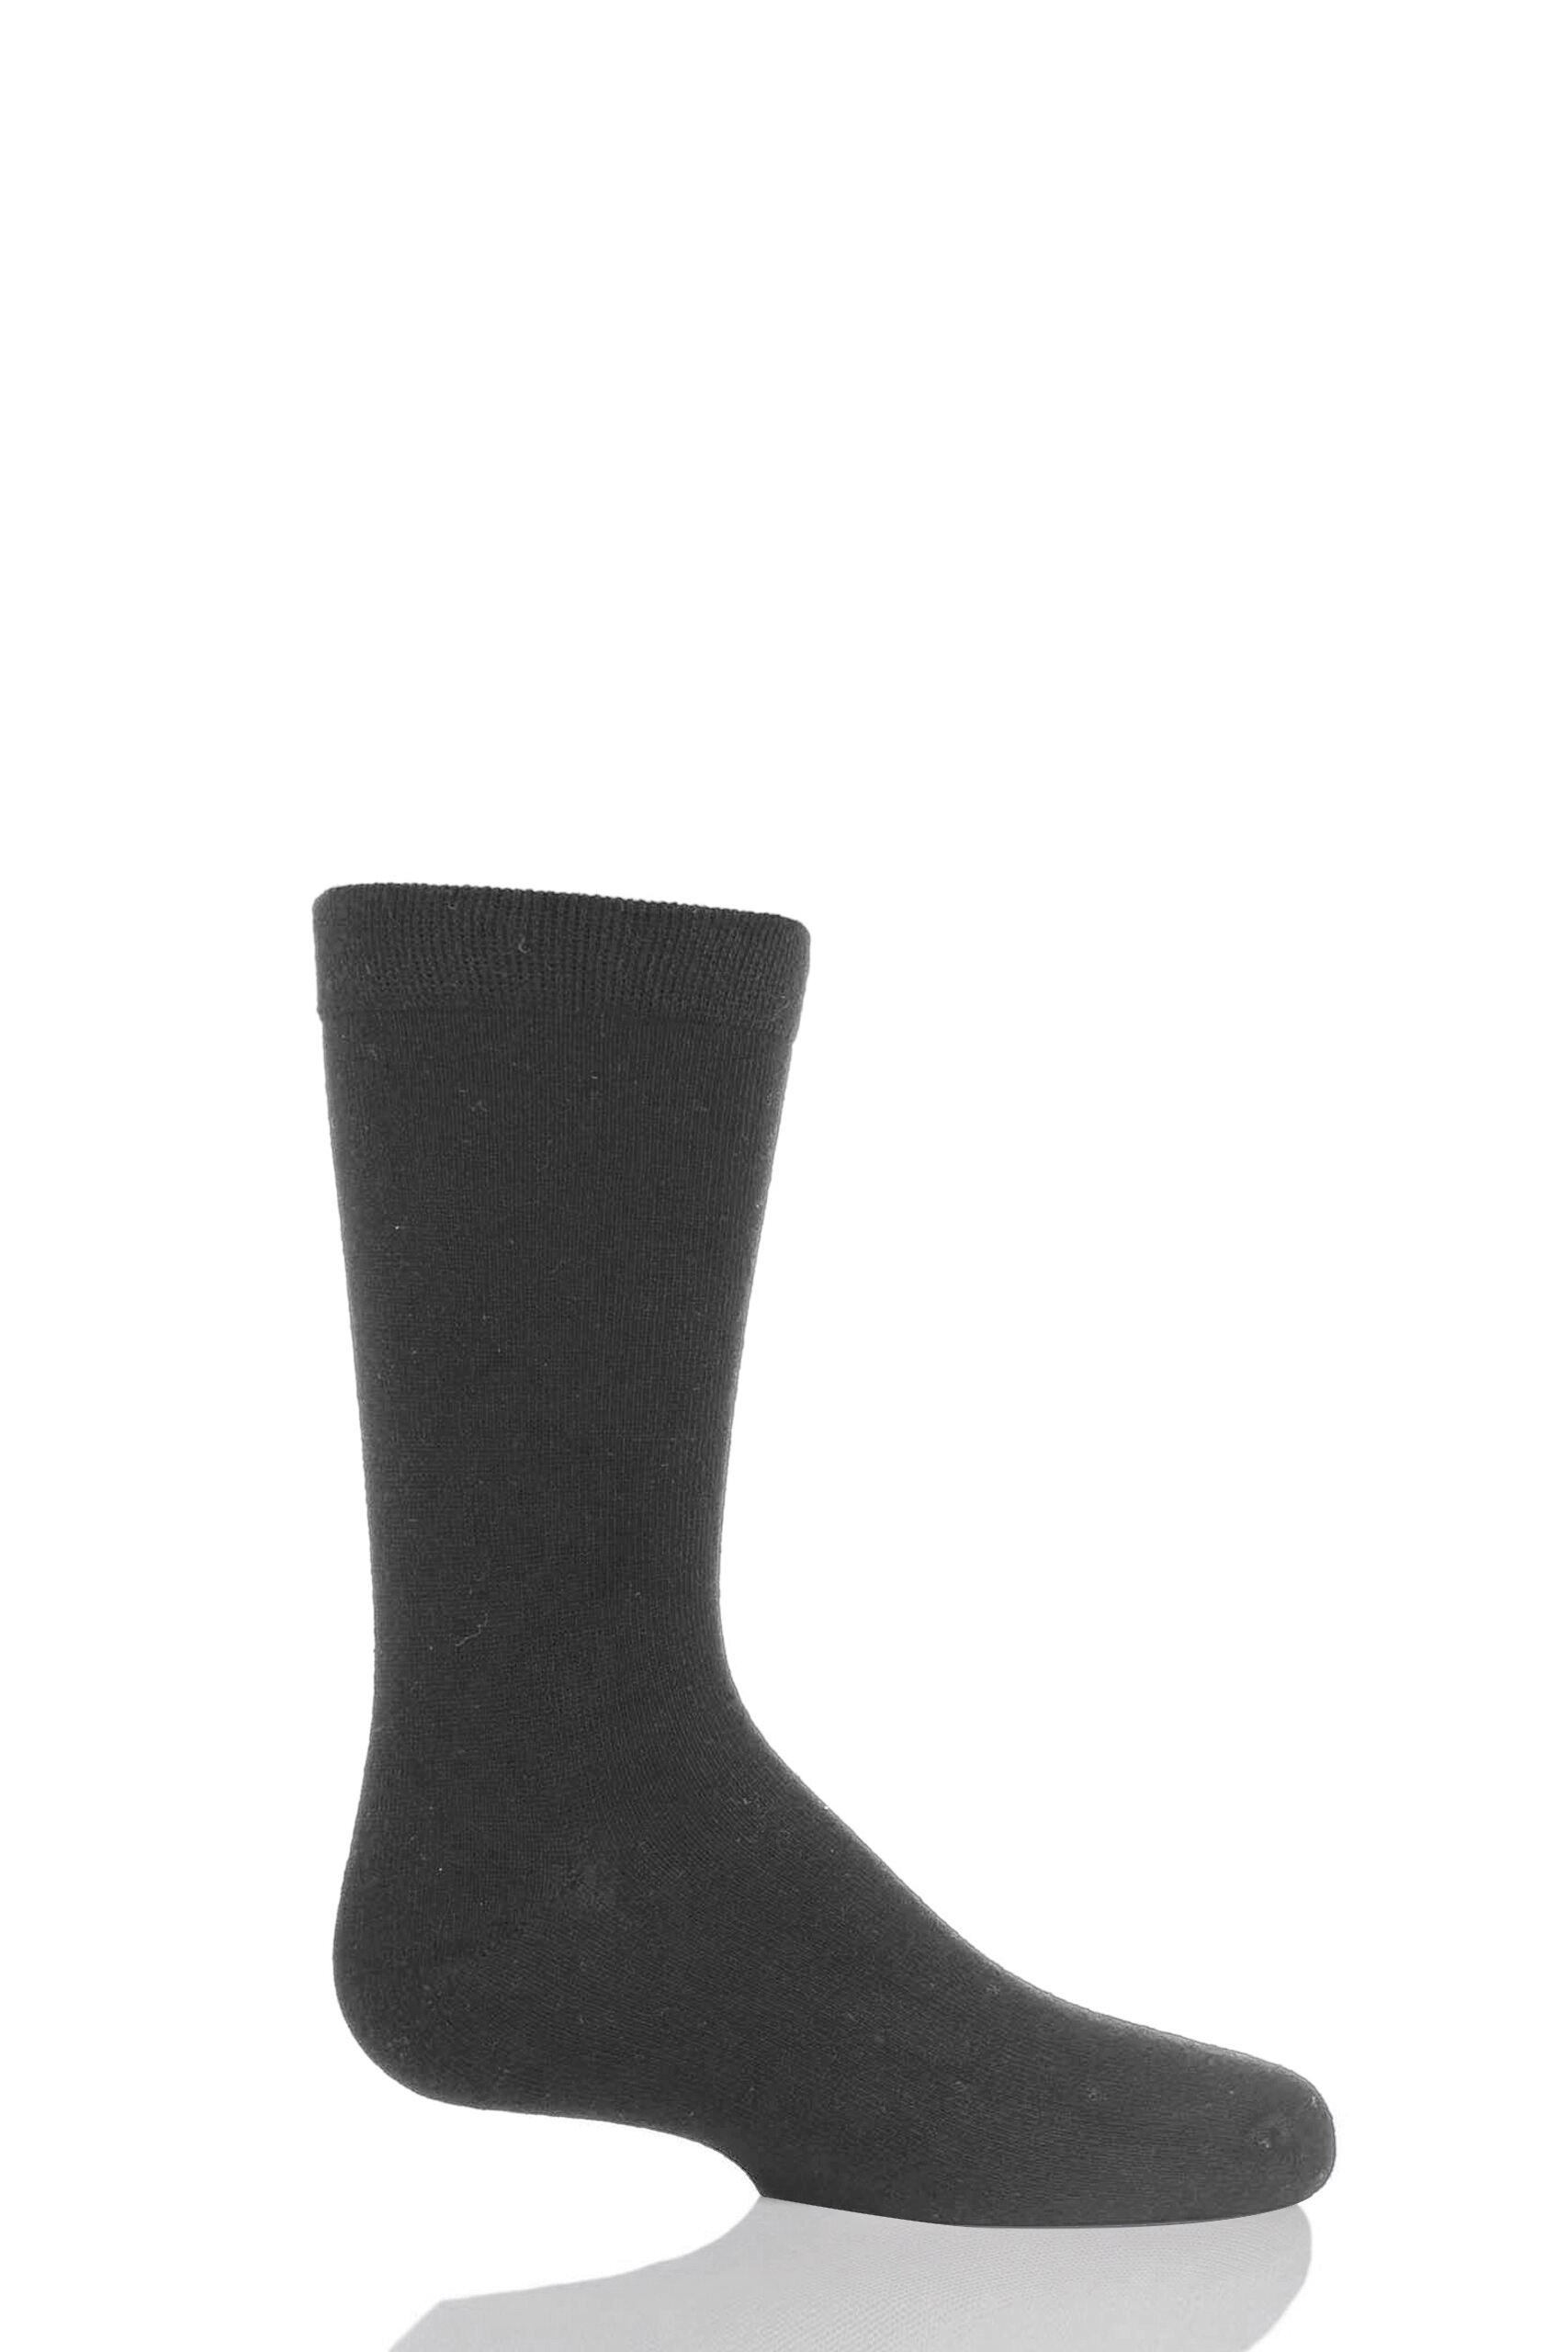 Image of 1 Pair Grey Plain Bamboo Socks with Comfort Cuff and Smooth Toe Seams Kids Unisex 12.5-3.5 Kids (8-12 Years) - SOCKSHOP